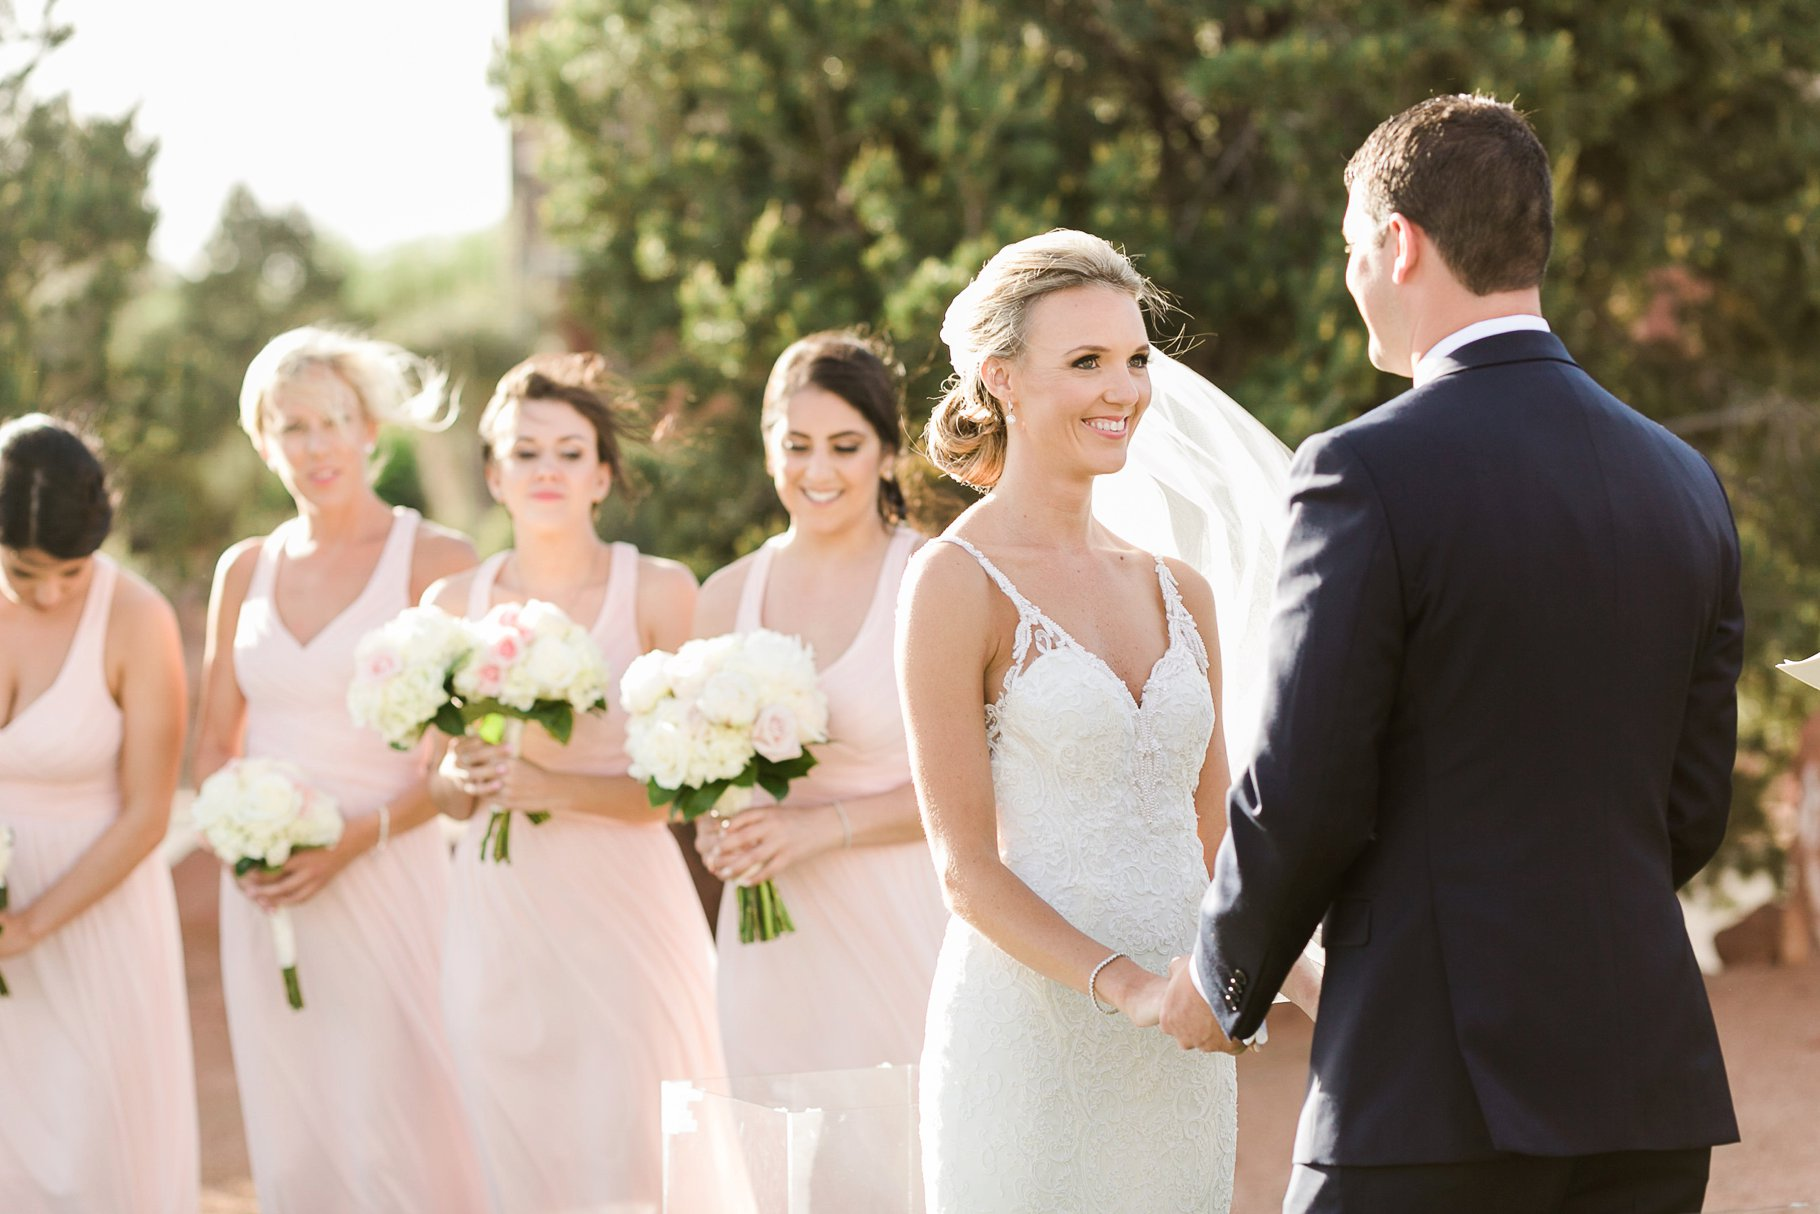 sedona wedding-77_GRETCHEN WAKEMAN PHOTOGRAPHY.jpg